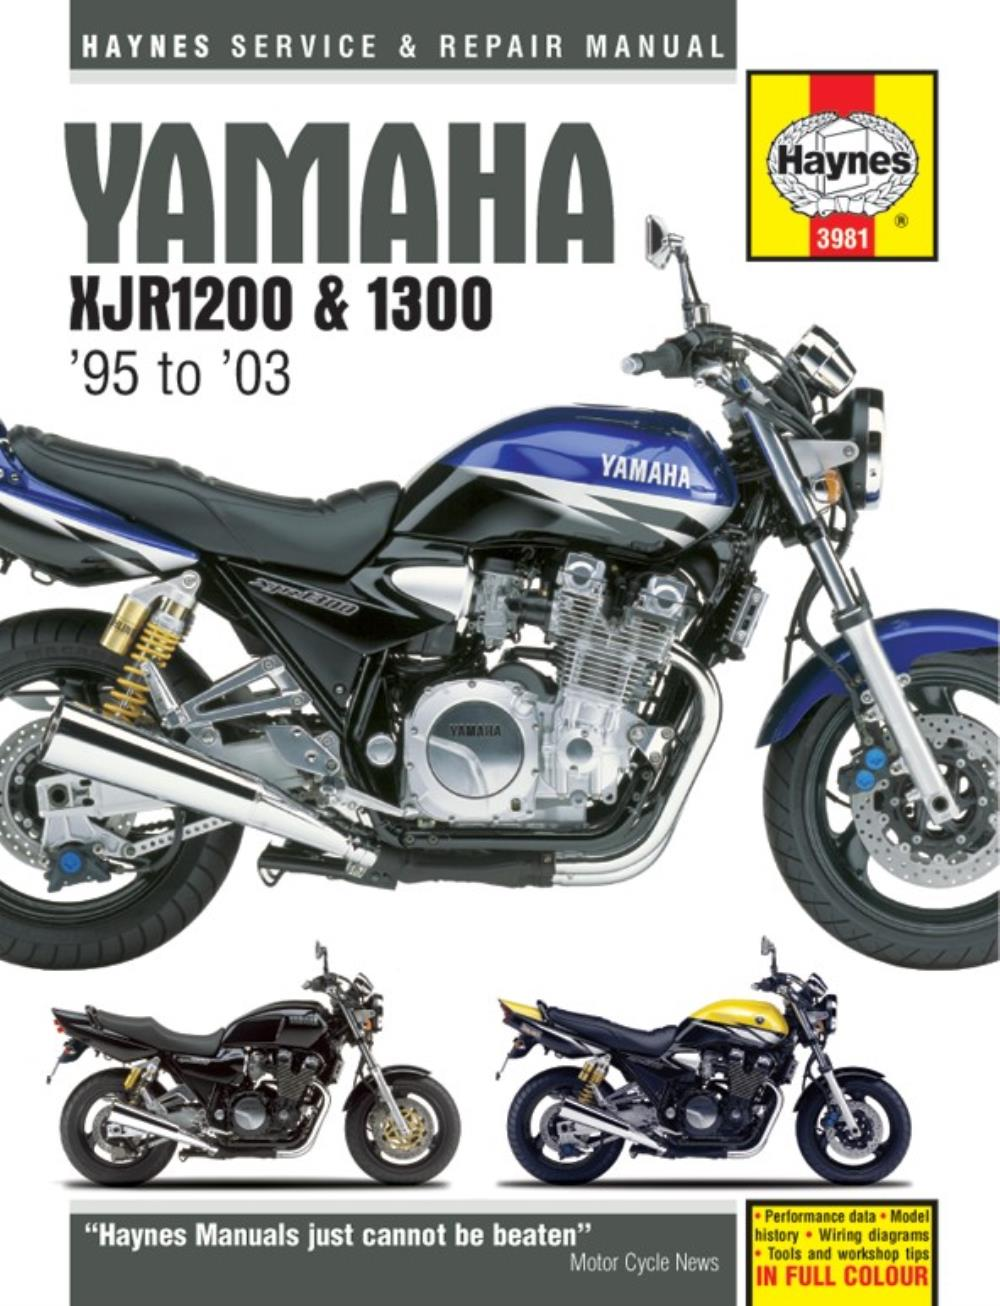 Manual Haynes for 2005 Yamaha XJR 1300 T (5WMC) (Australia Model)